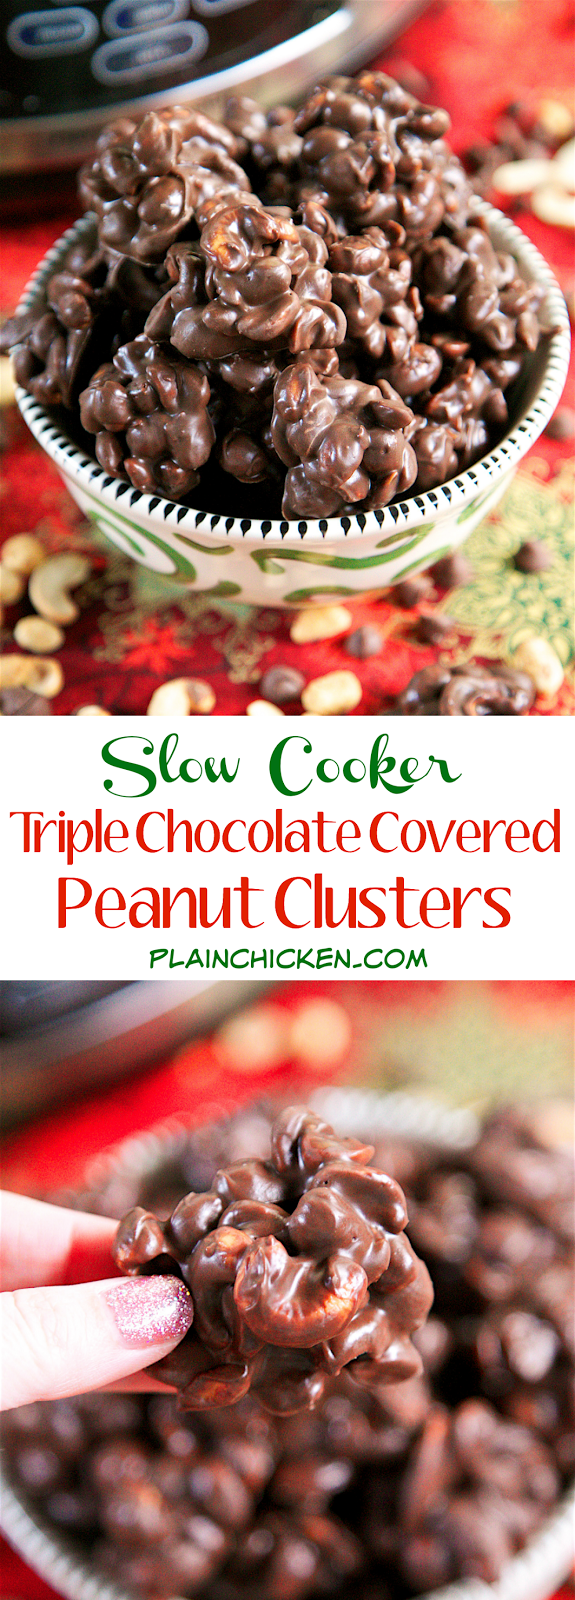 Slow Cooker} Triple Chocolate Covered Peanut Clusters - Plain Chicken